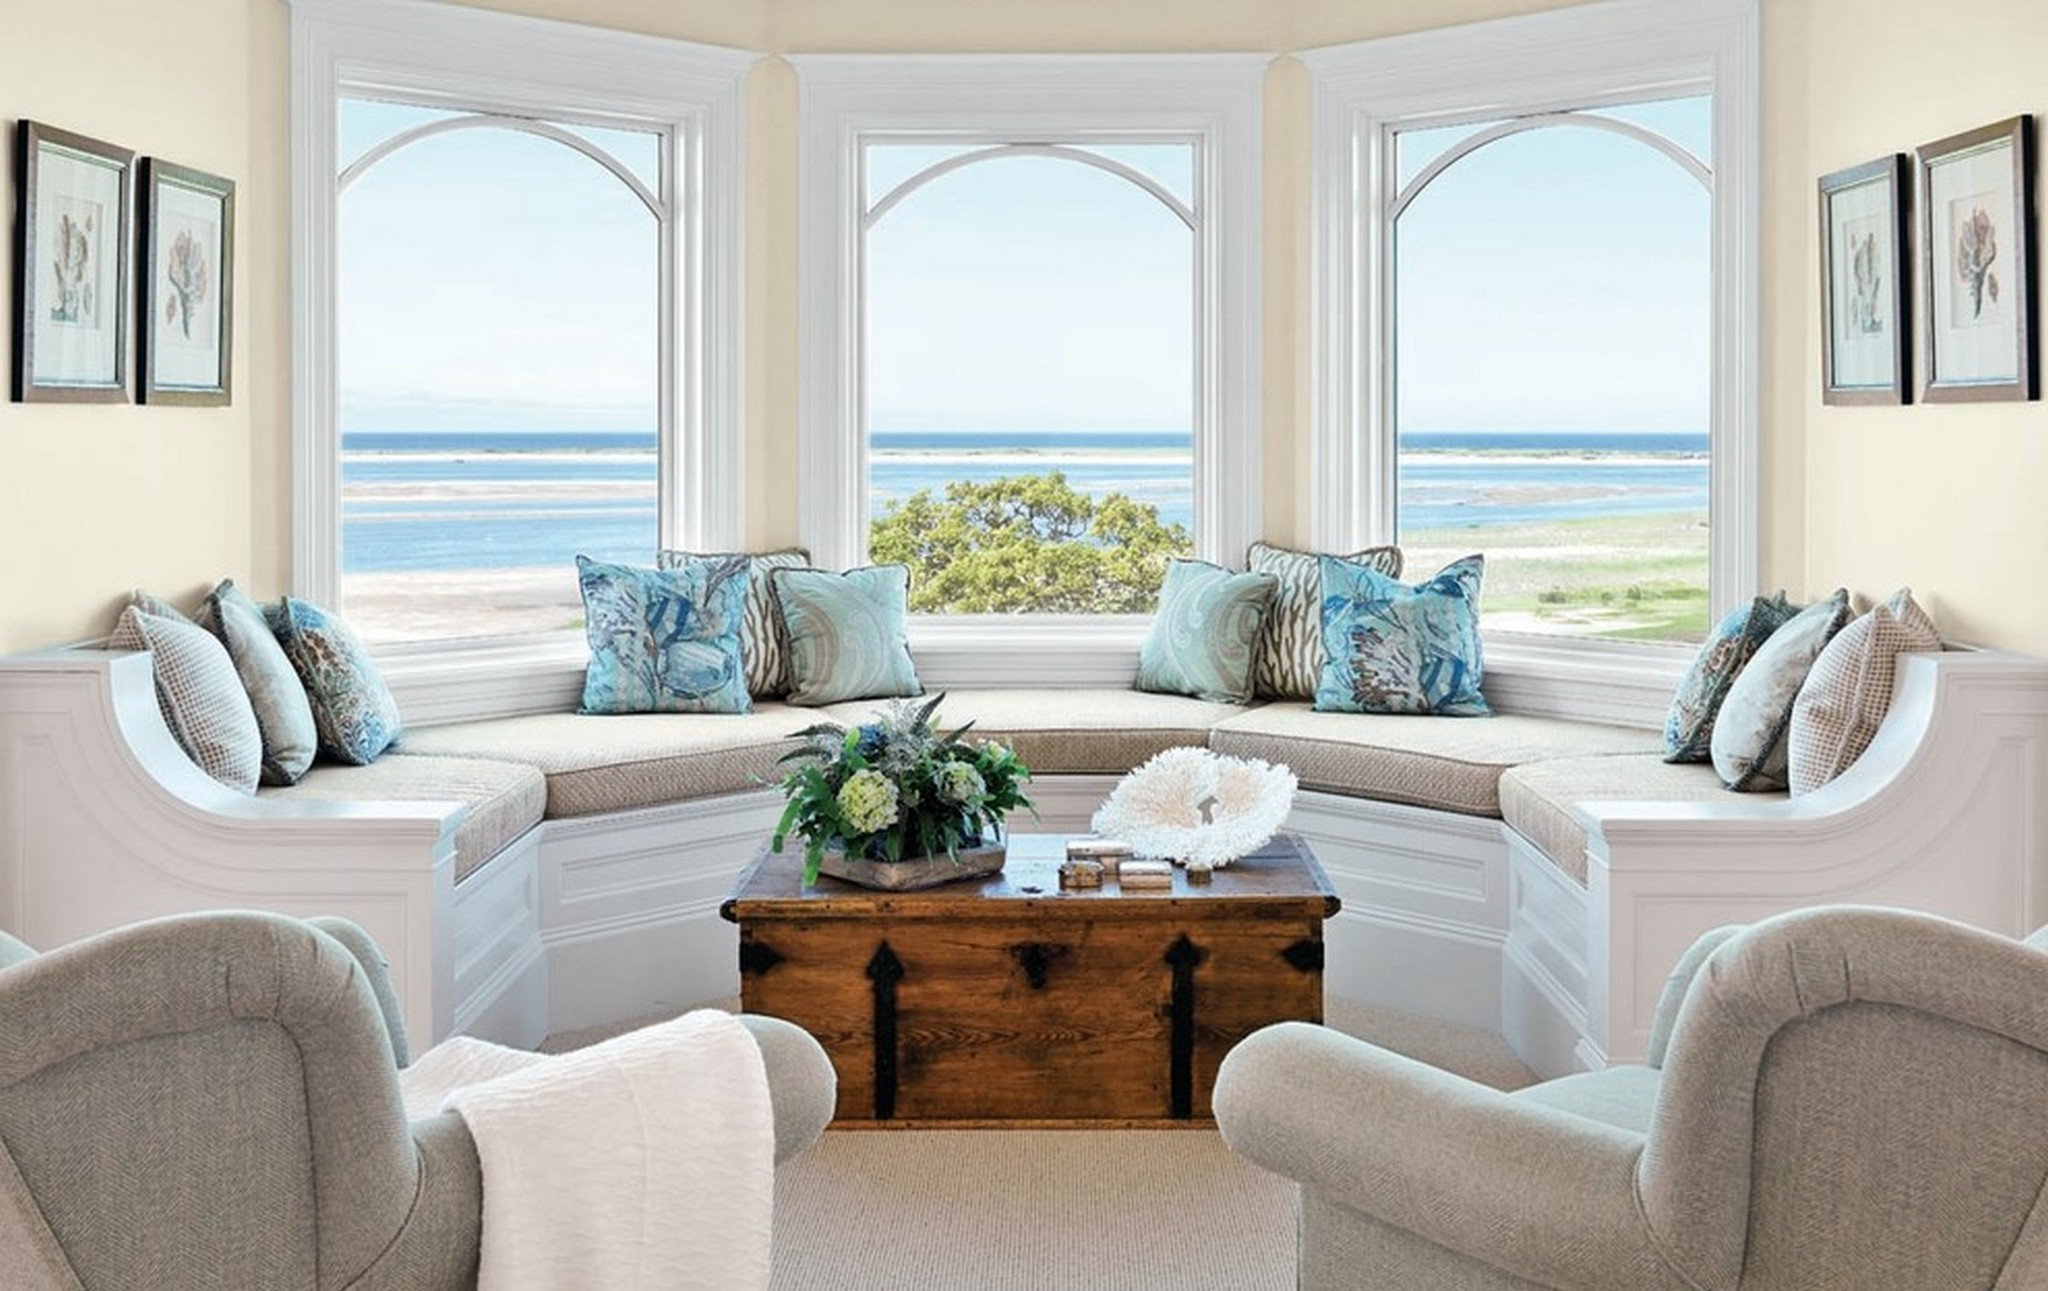 Beach Themed Coffee Table Decor For Living Room